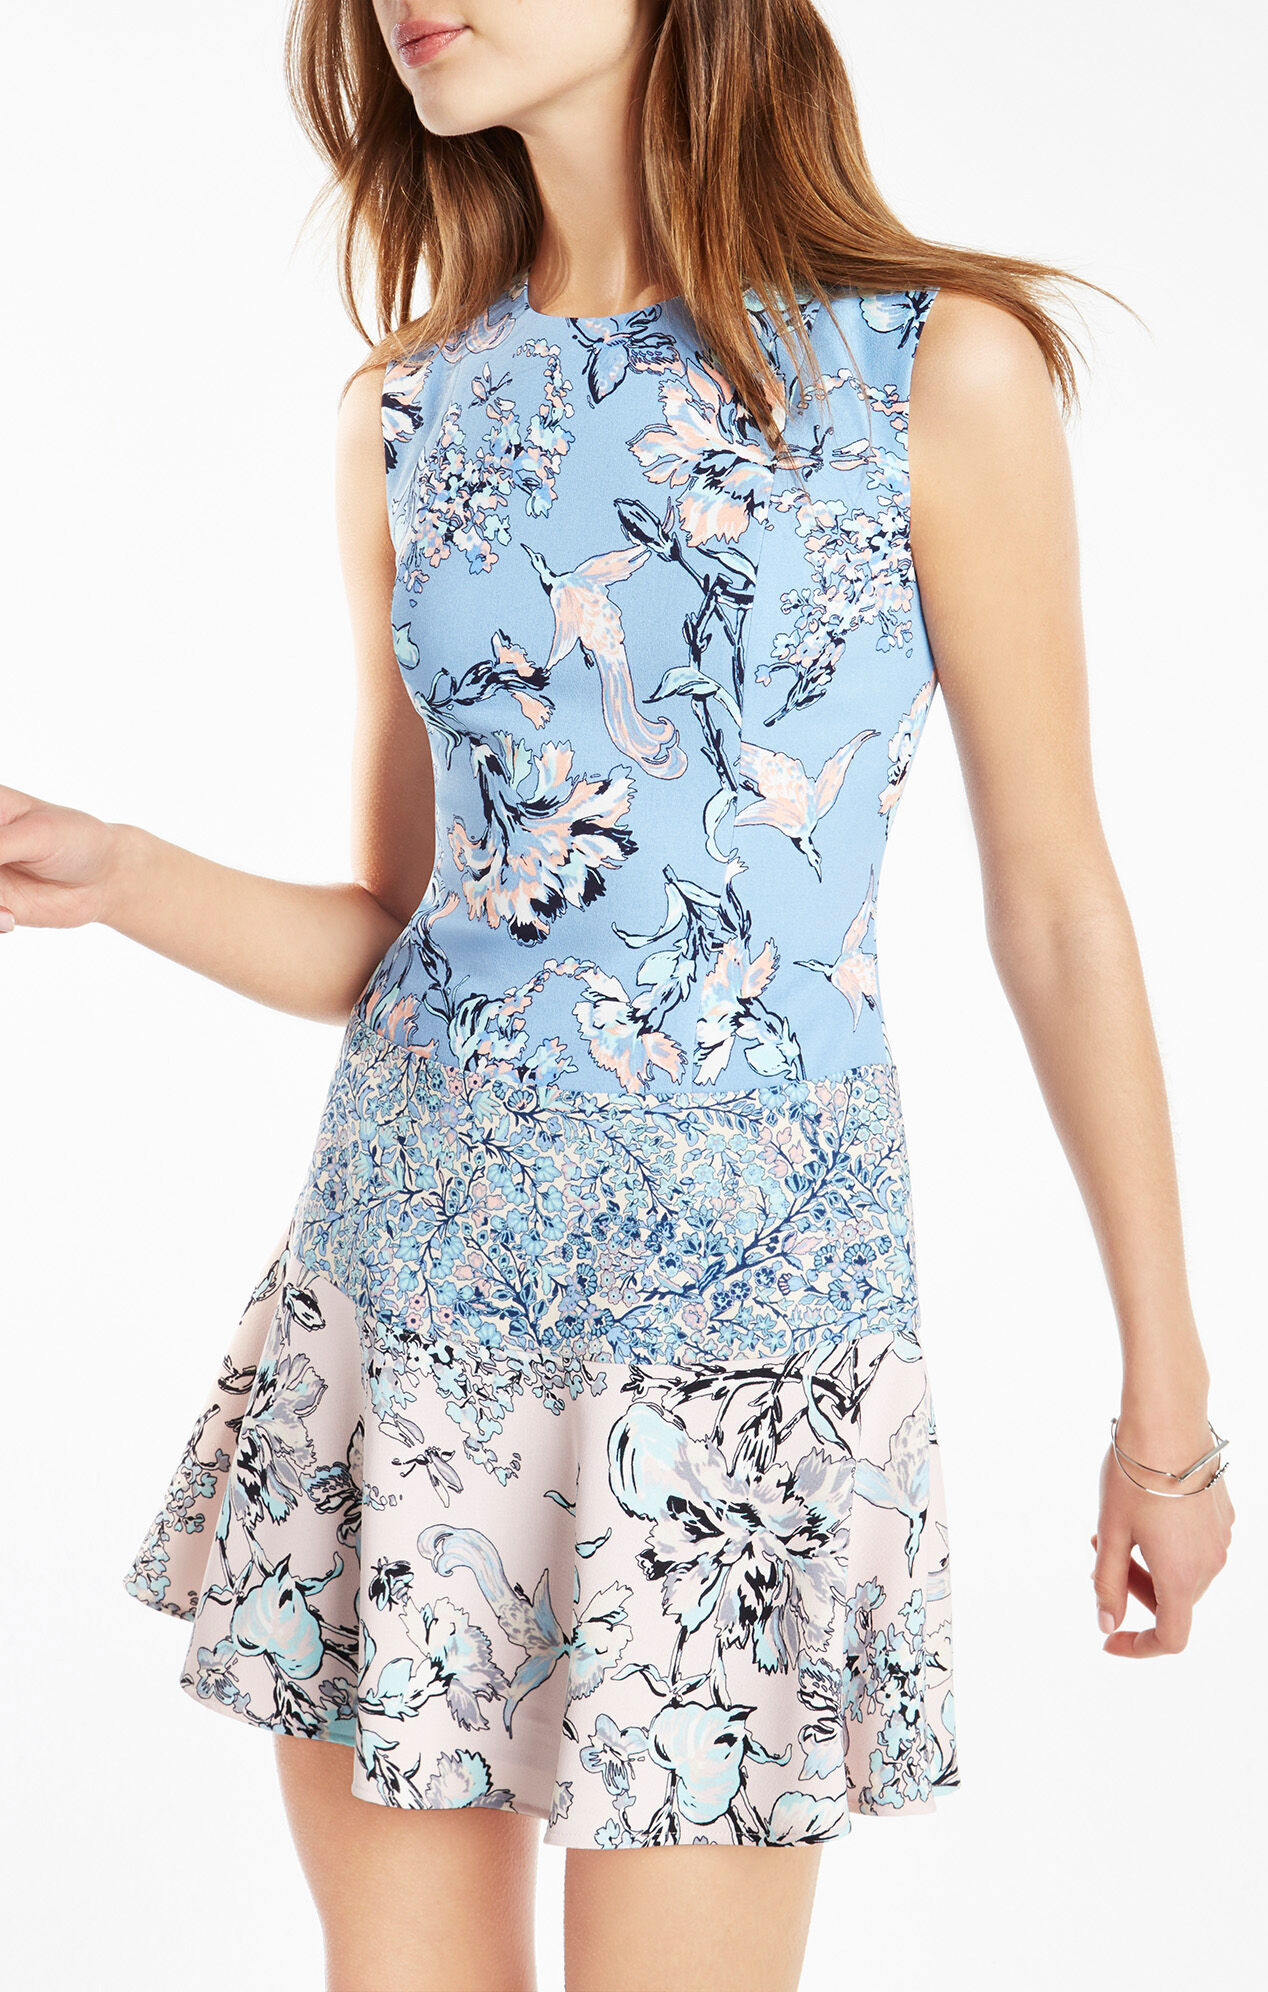 Lillian Floral Print-Blocked Dress